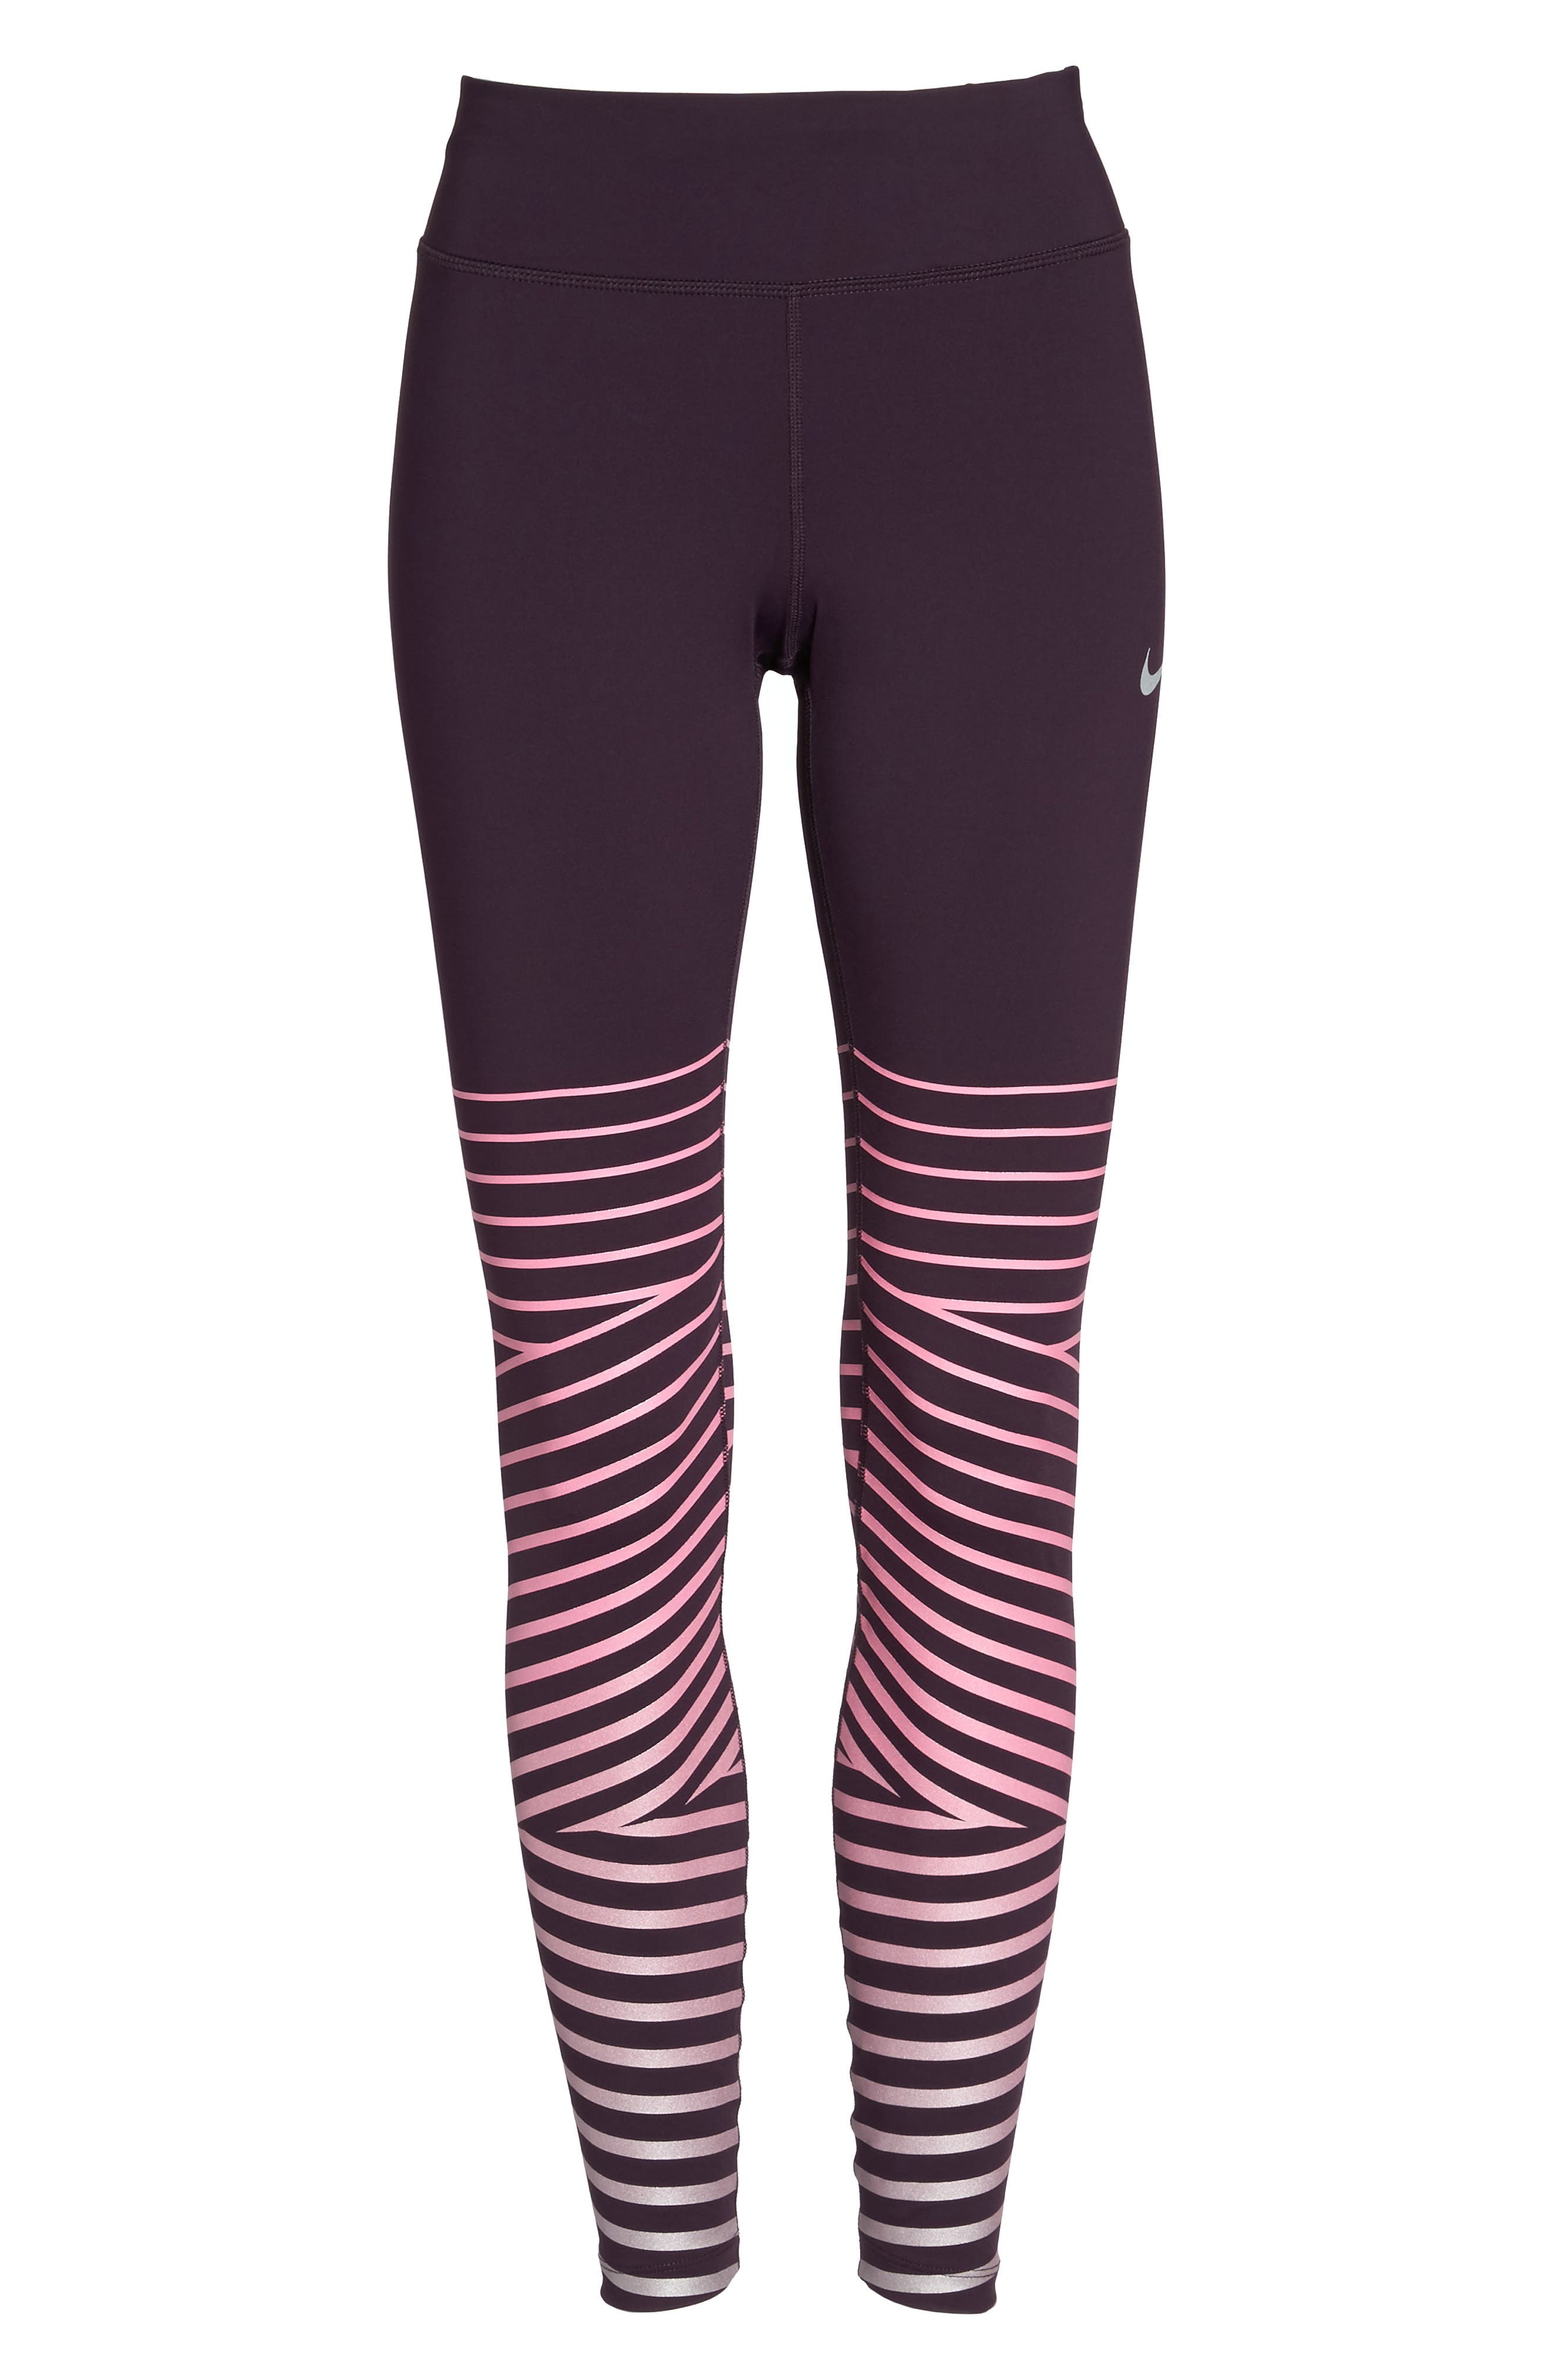 Nike Power Epic Lux Flash Running Tights